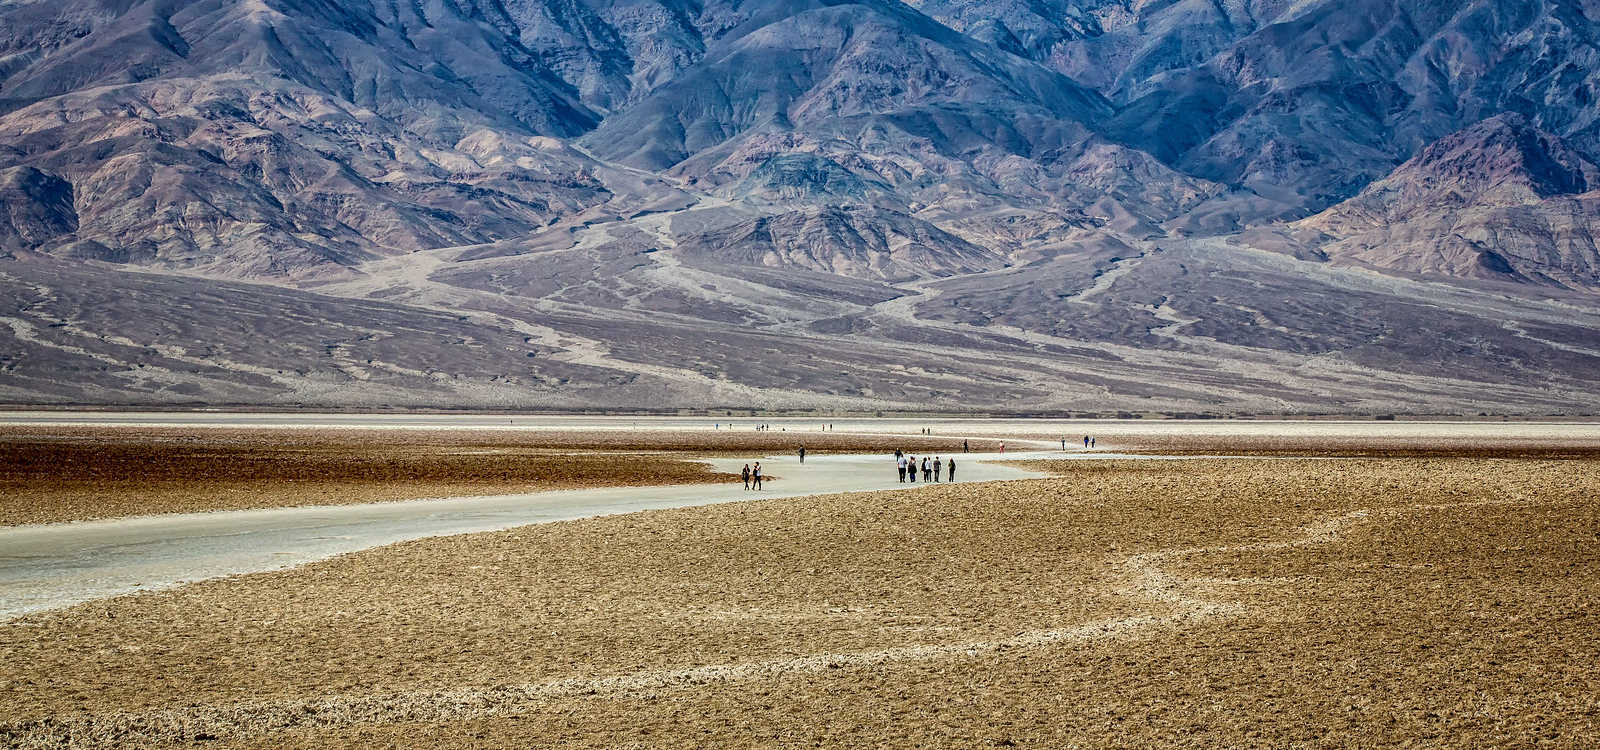 How Hot Does It Get In Death Valley? (Take A Look…)